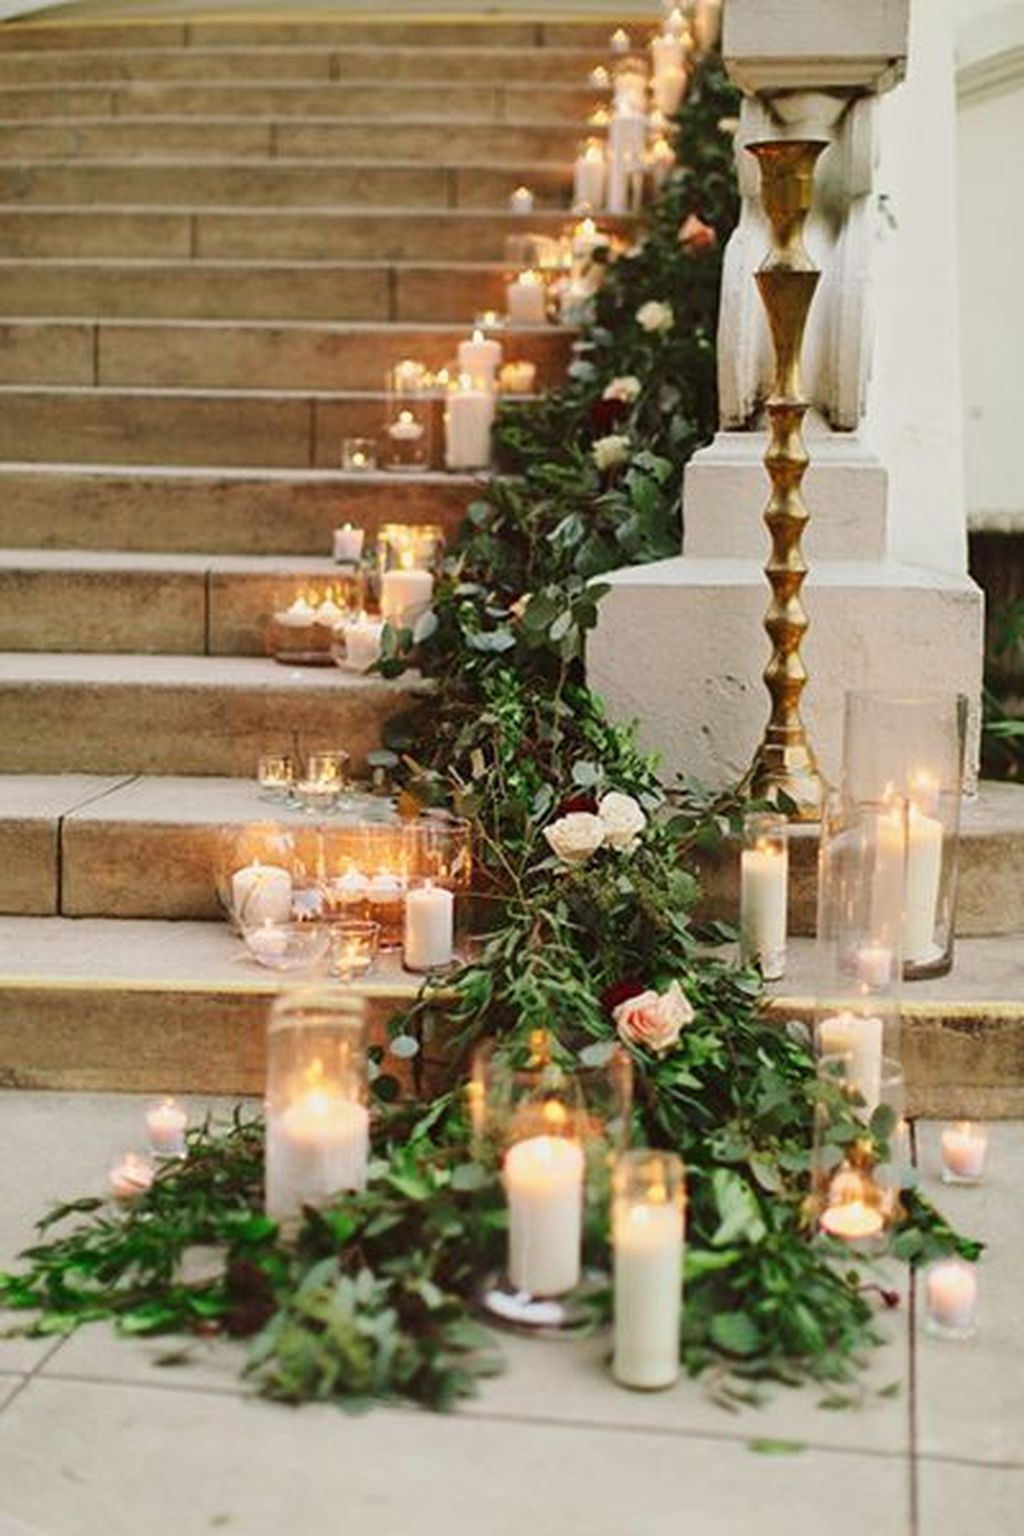 Hottest Wedding Decorations Ideas On A Budget10